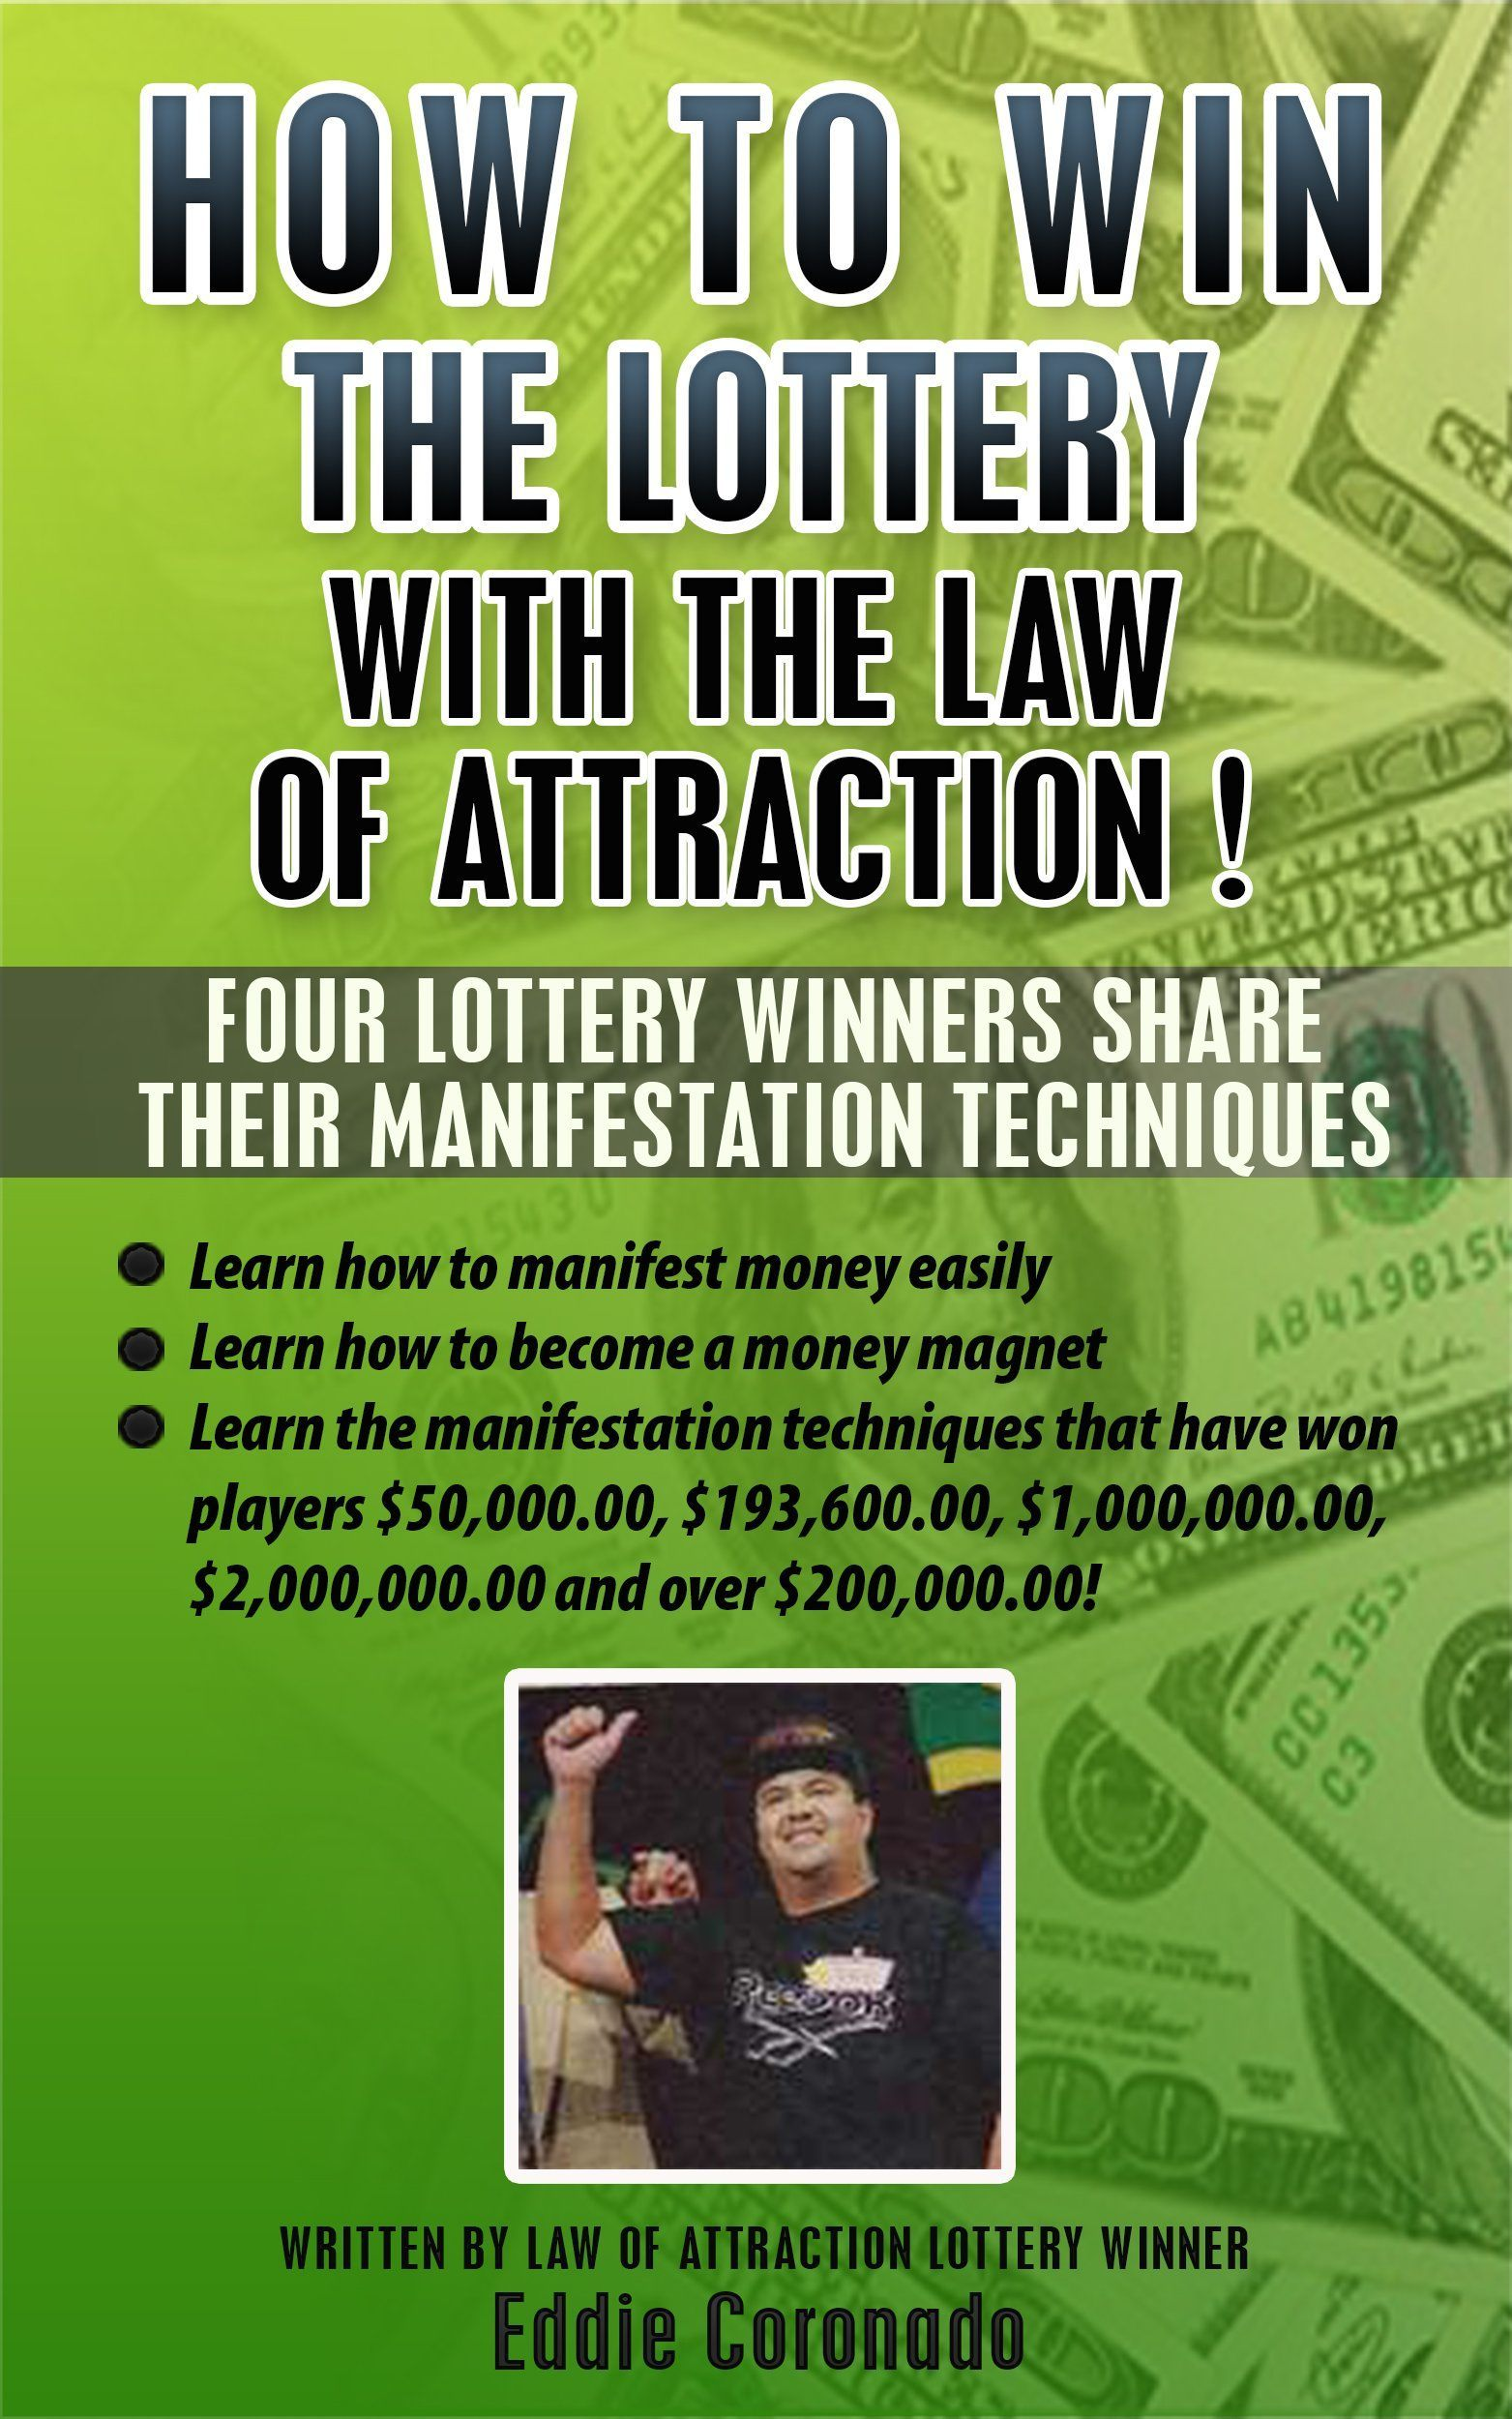 Eddie Coronado believes he's discovered the secret to winning the lottery, and though you might not become a millionaire by reading his book, it could improve your life.